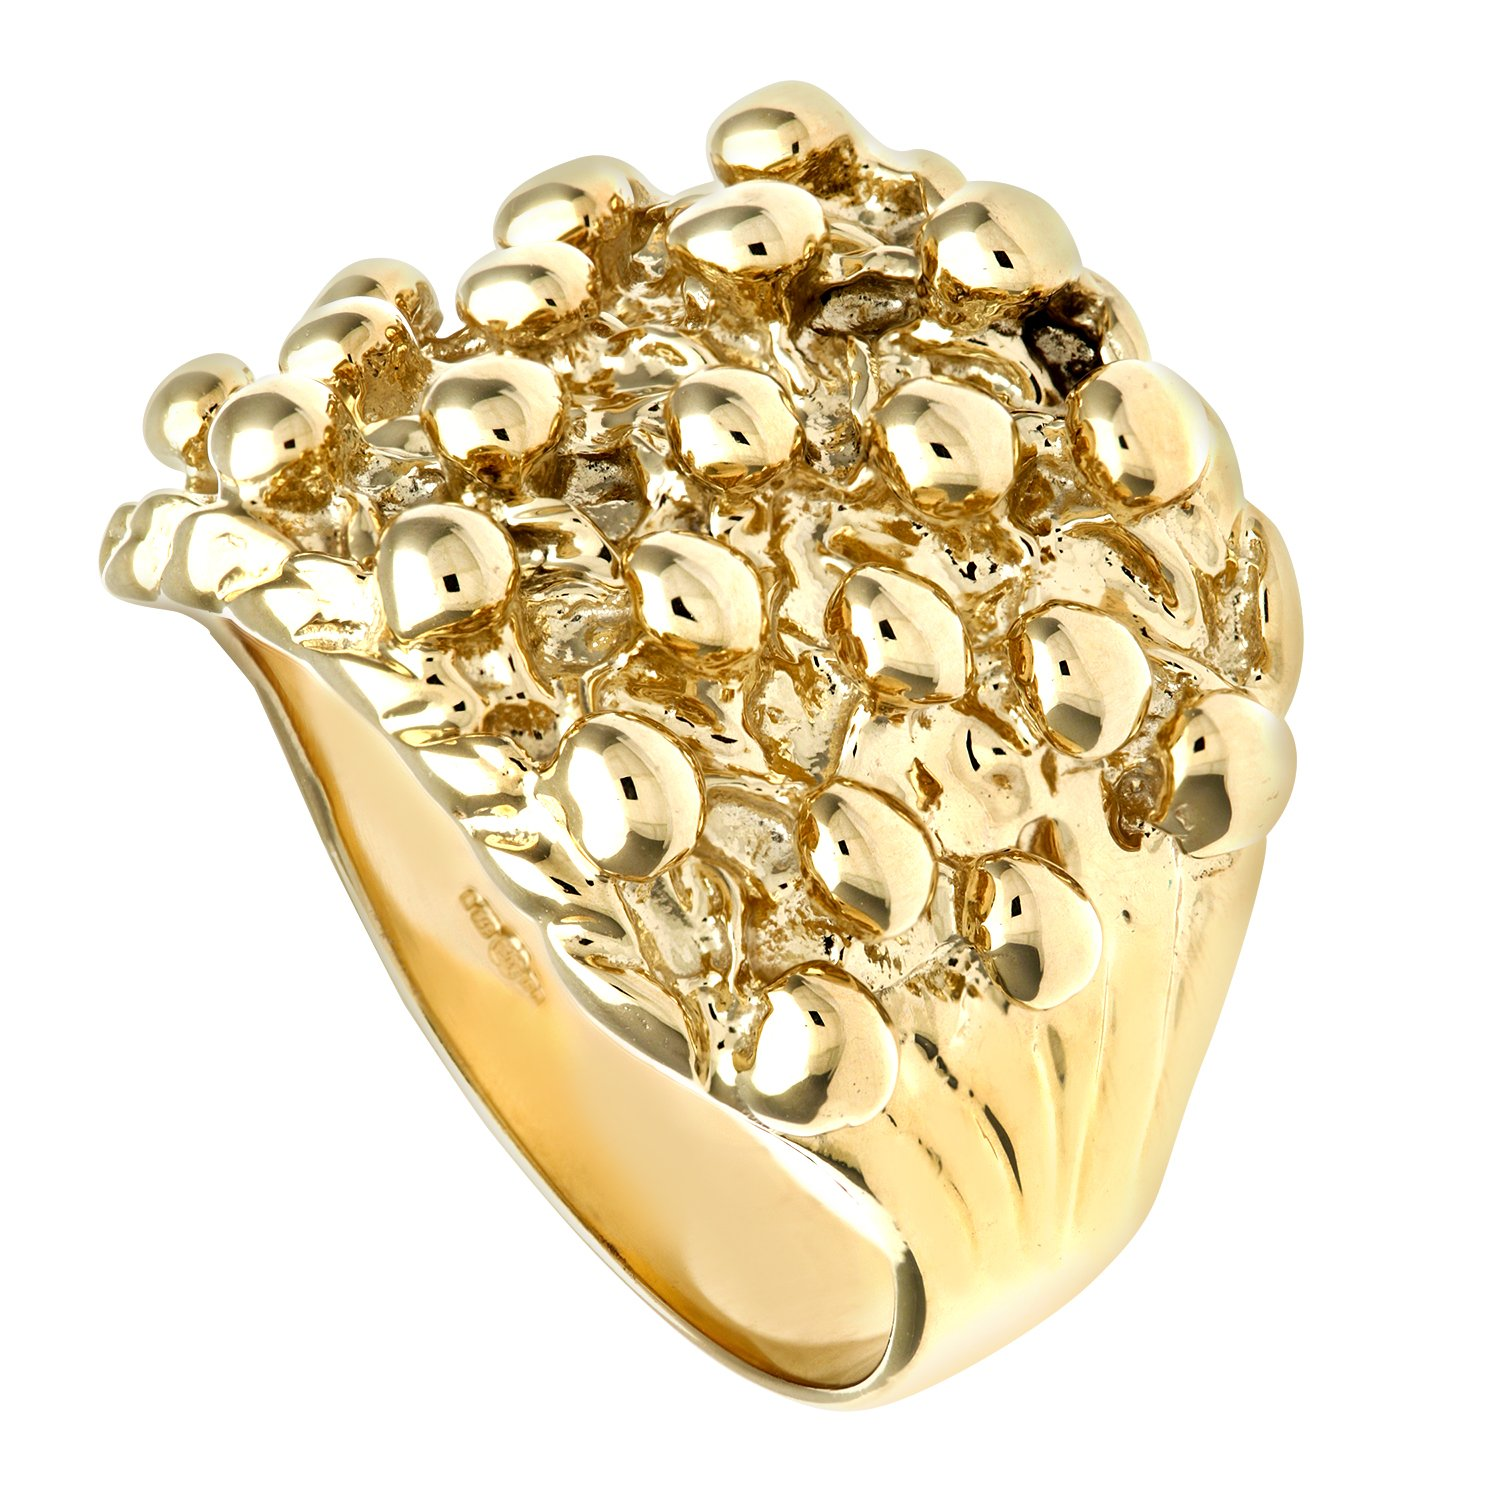 jewellery ring eternity gold white half rings jones product webstore number ernest l category material